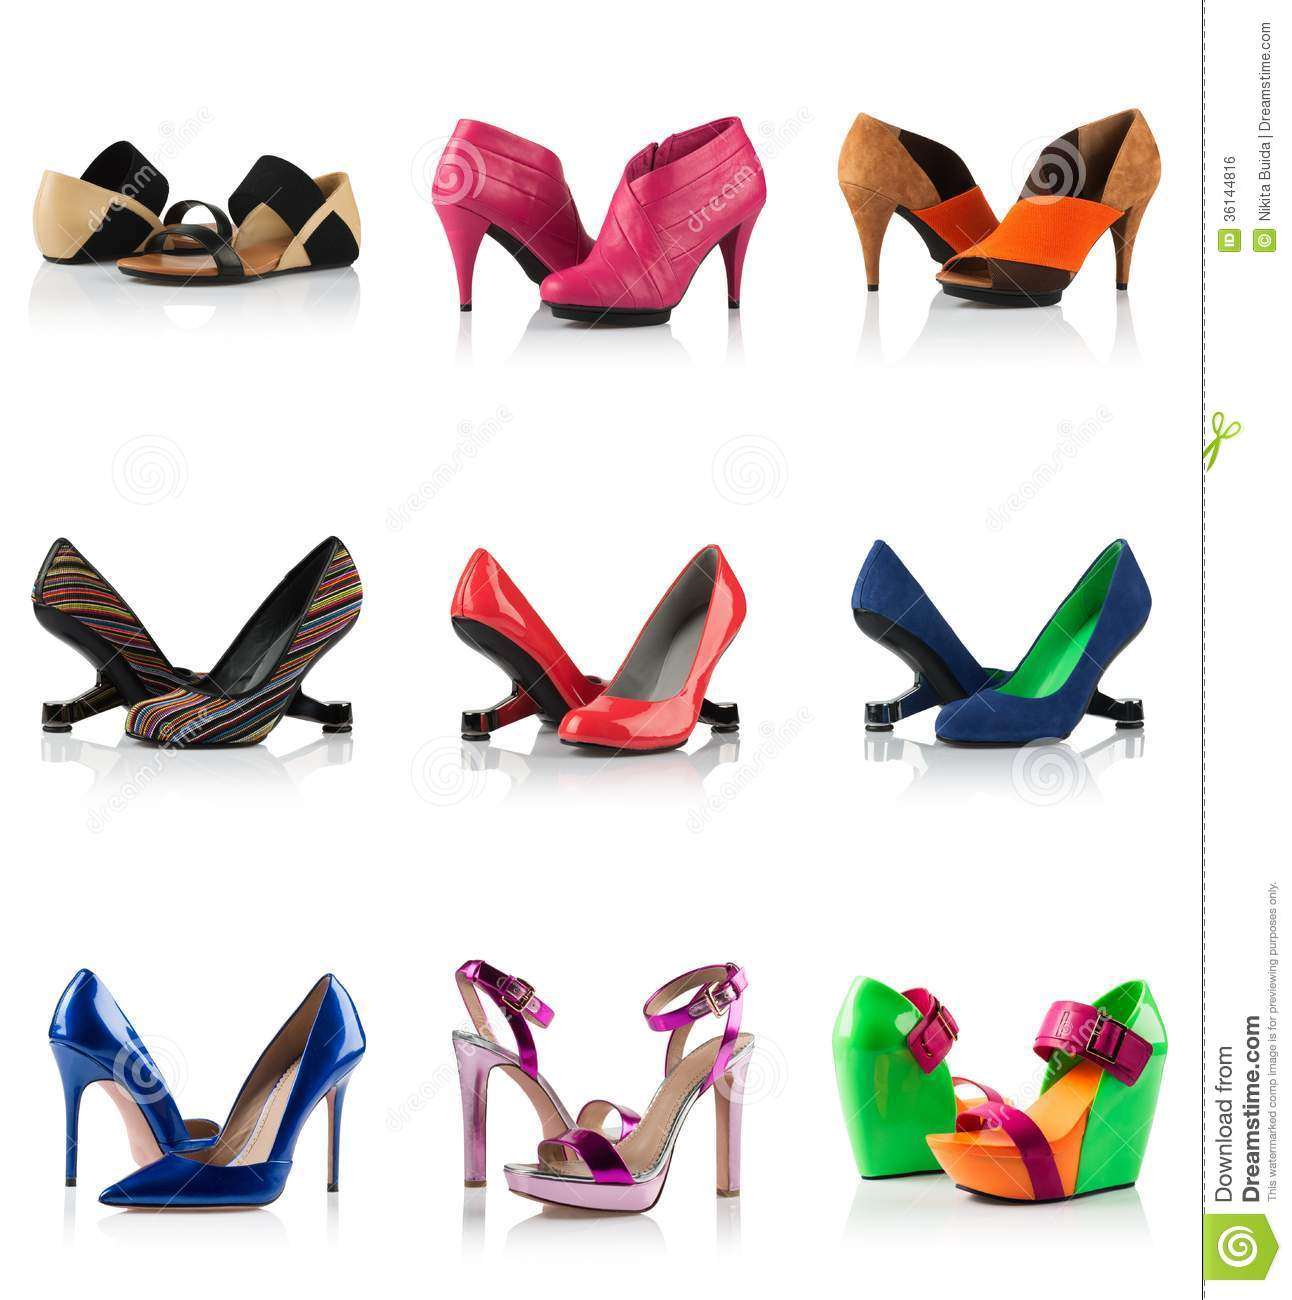 Clothes stores :: Types of womens shoes